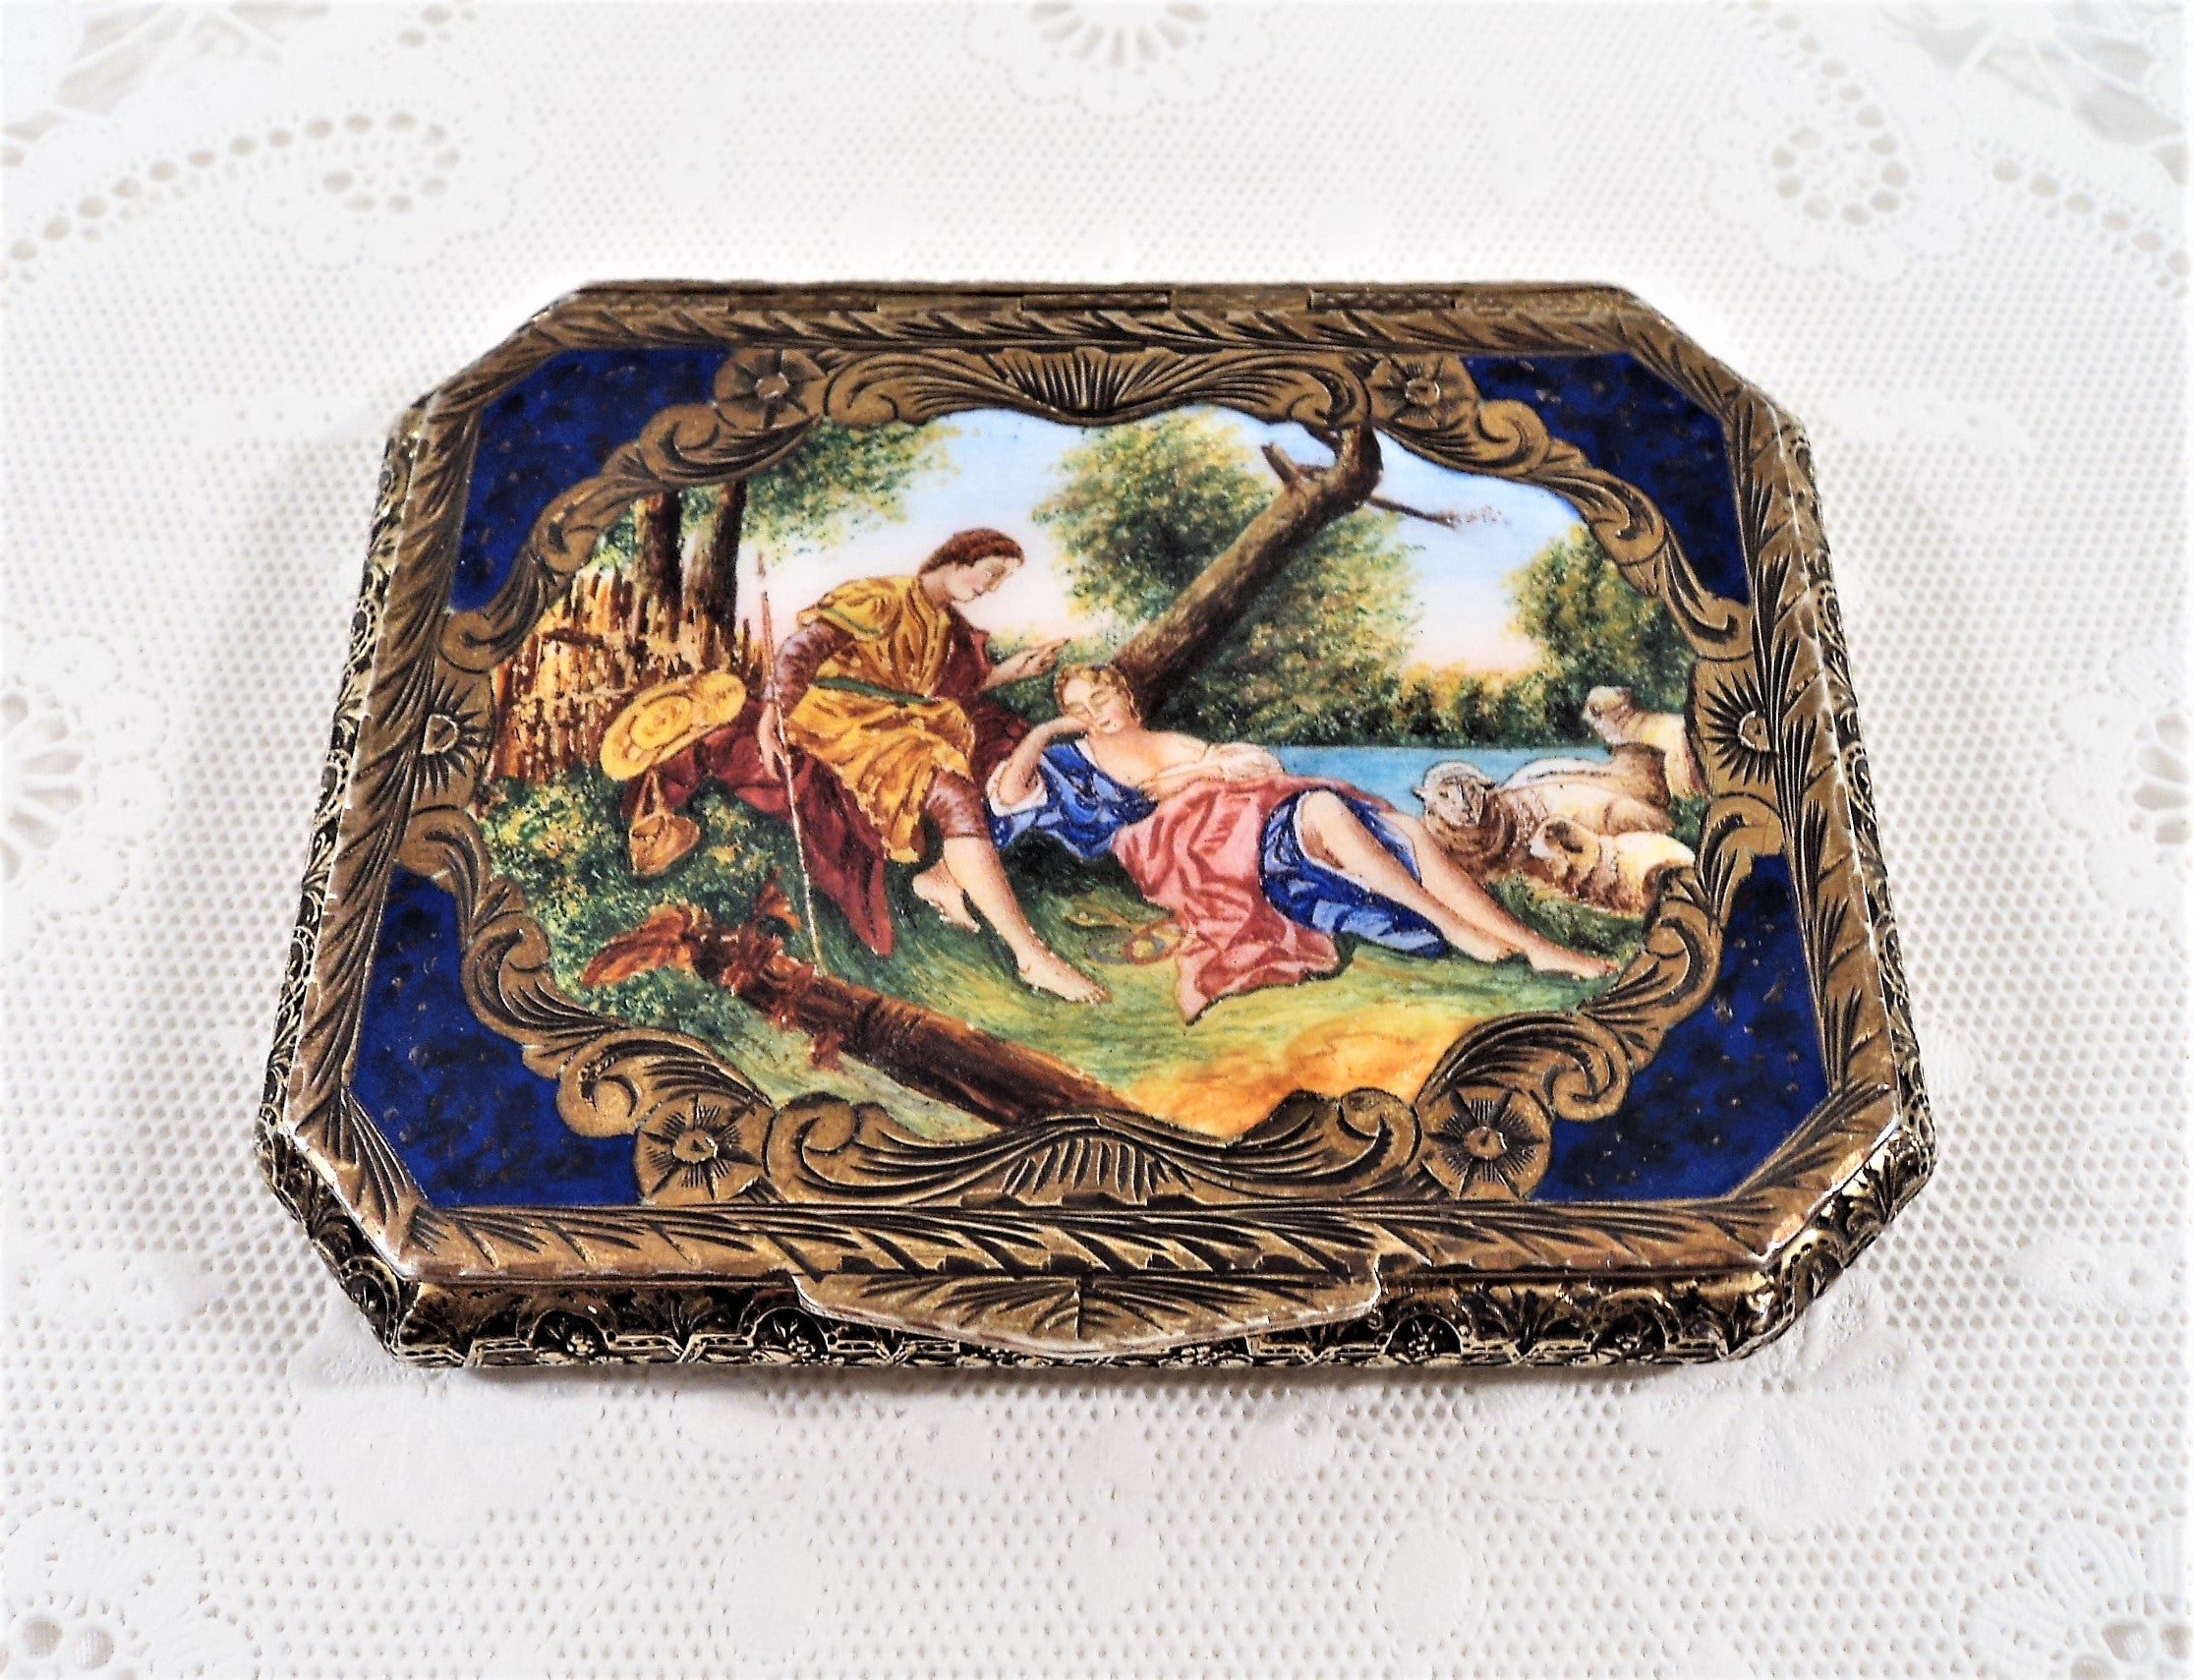 Italian Silver Hand-Painted Gilt and Enamel Compact